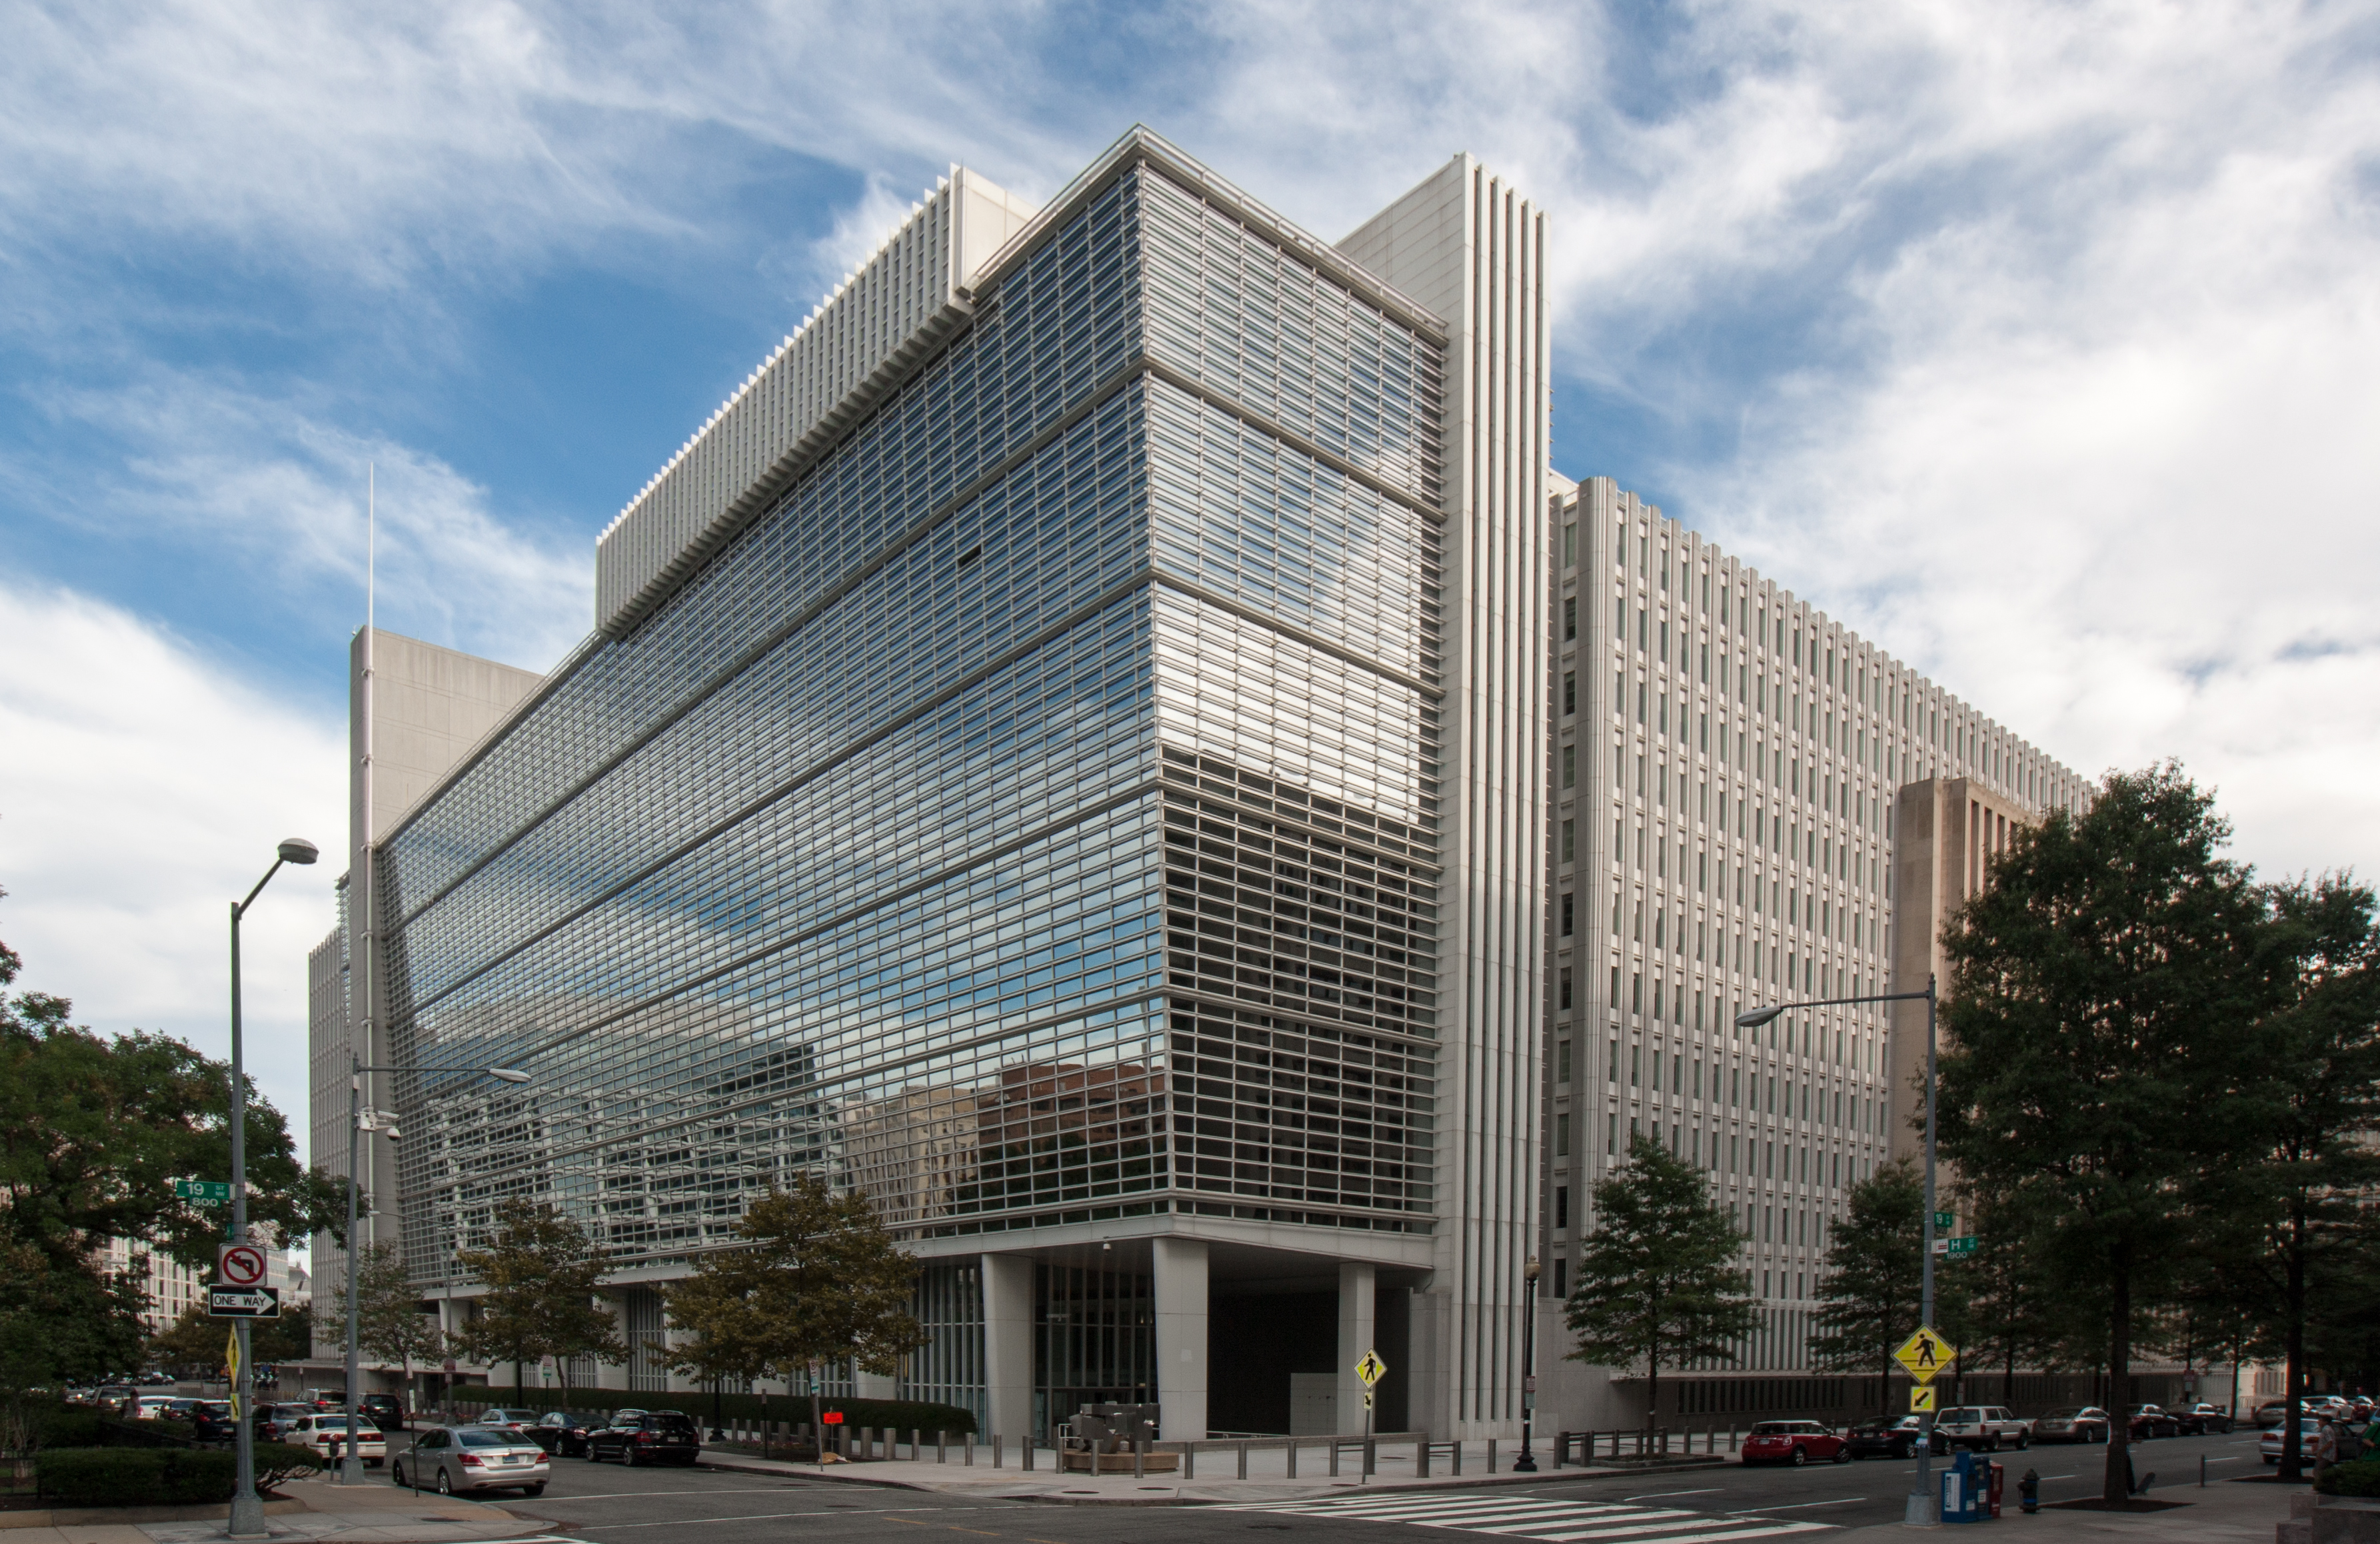 Washington DC, USA - September 14, 2014: The World Bank Headquarters Building on H street in Washington DC. The World Bank provides loans and technical assistance grants to developing countries for programs that reduce poverty.